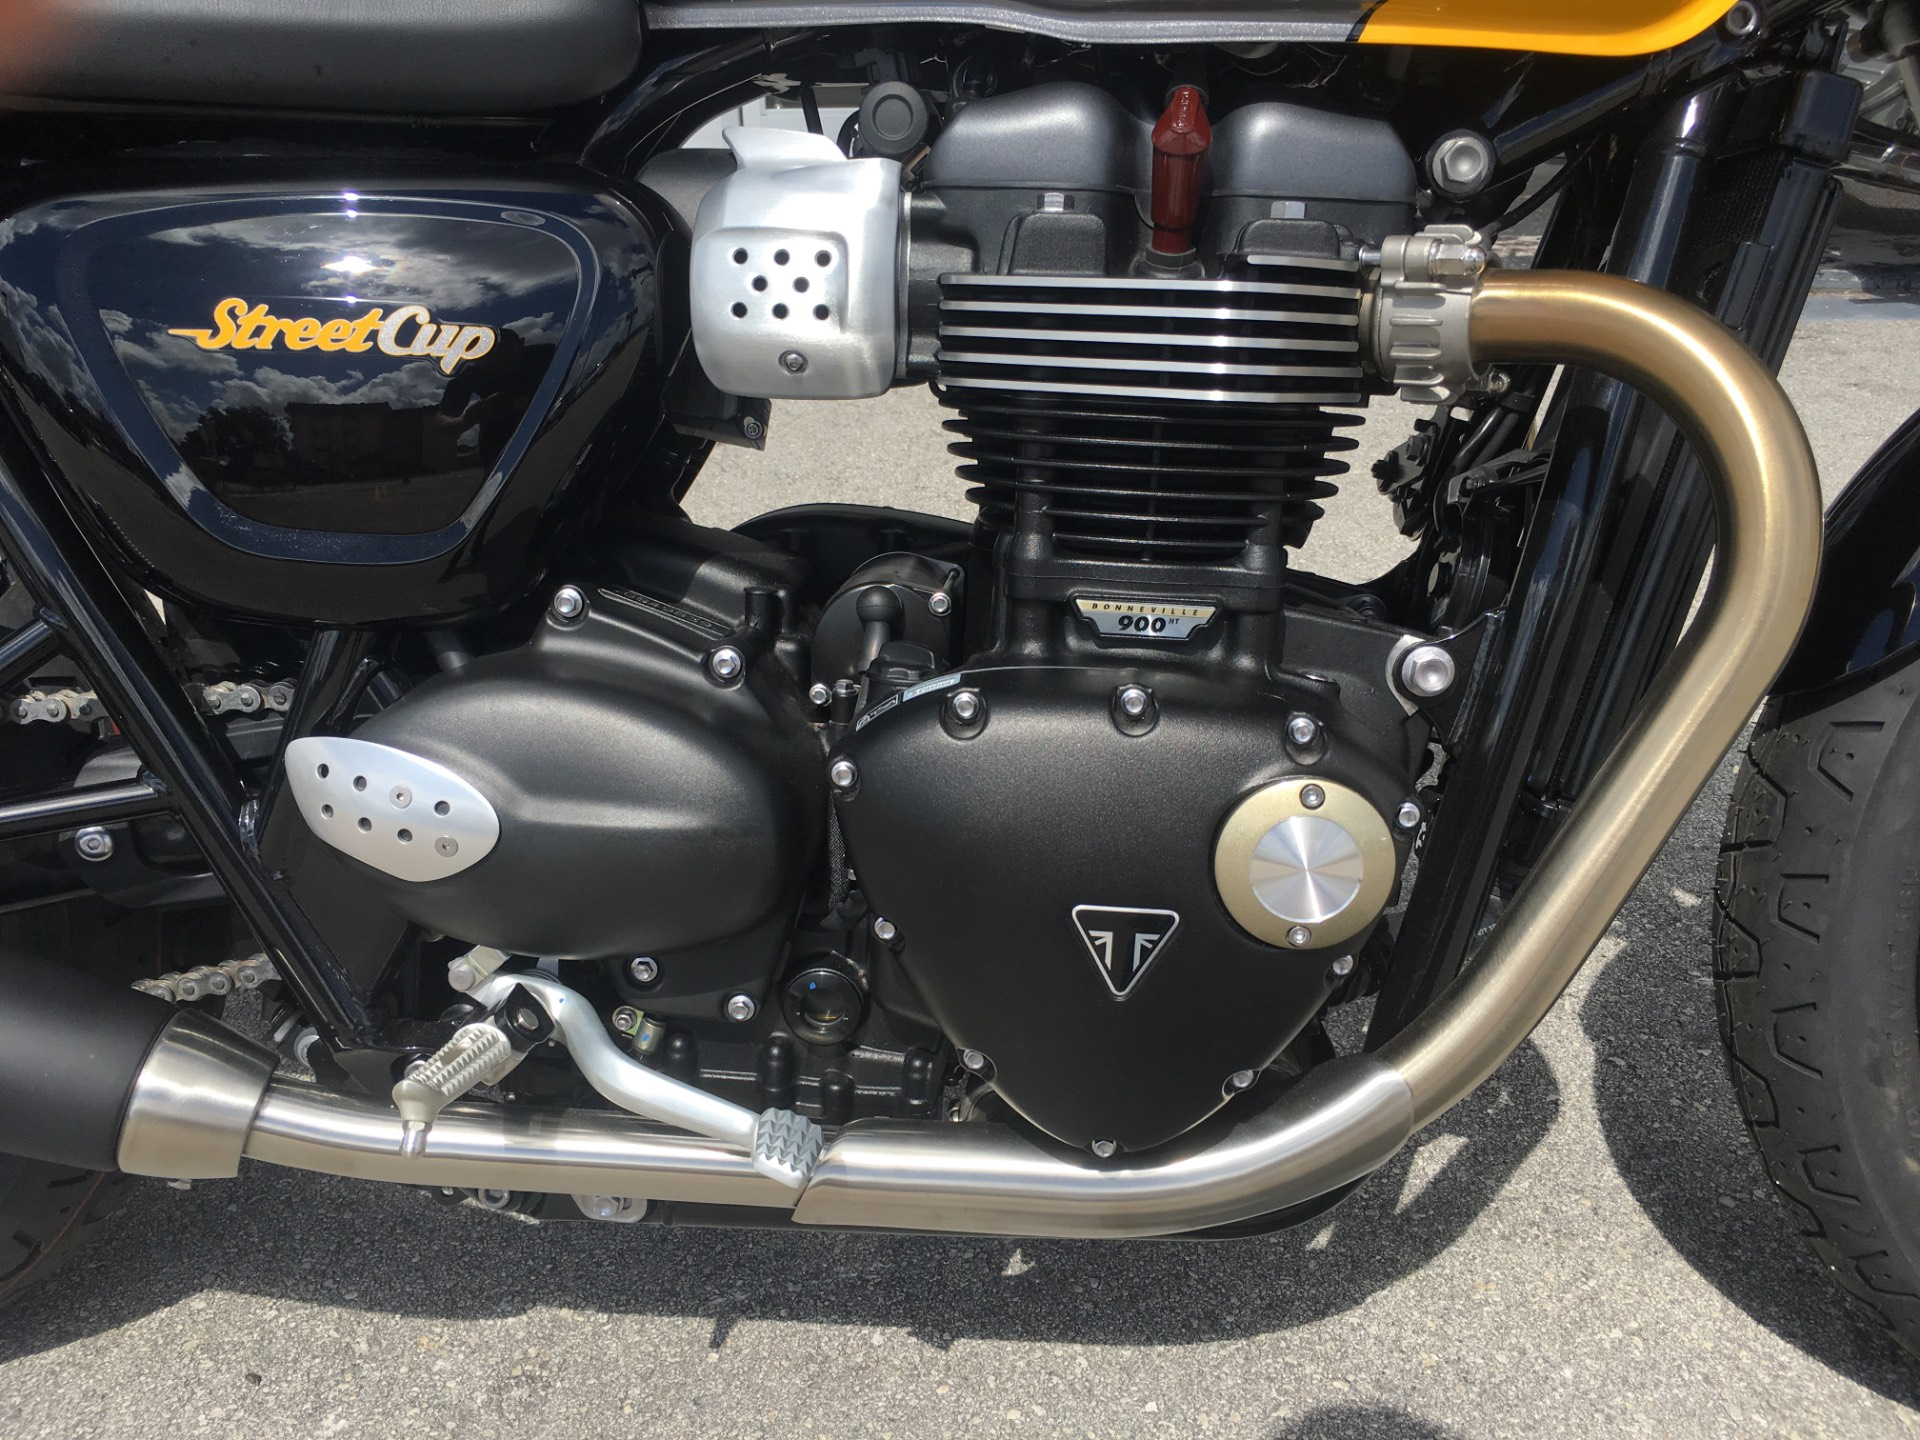 2018 Triumph Street Cup in Miami, Florida